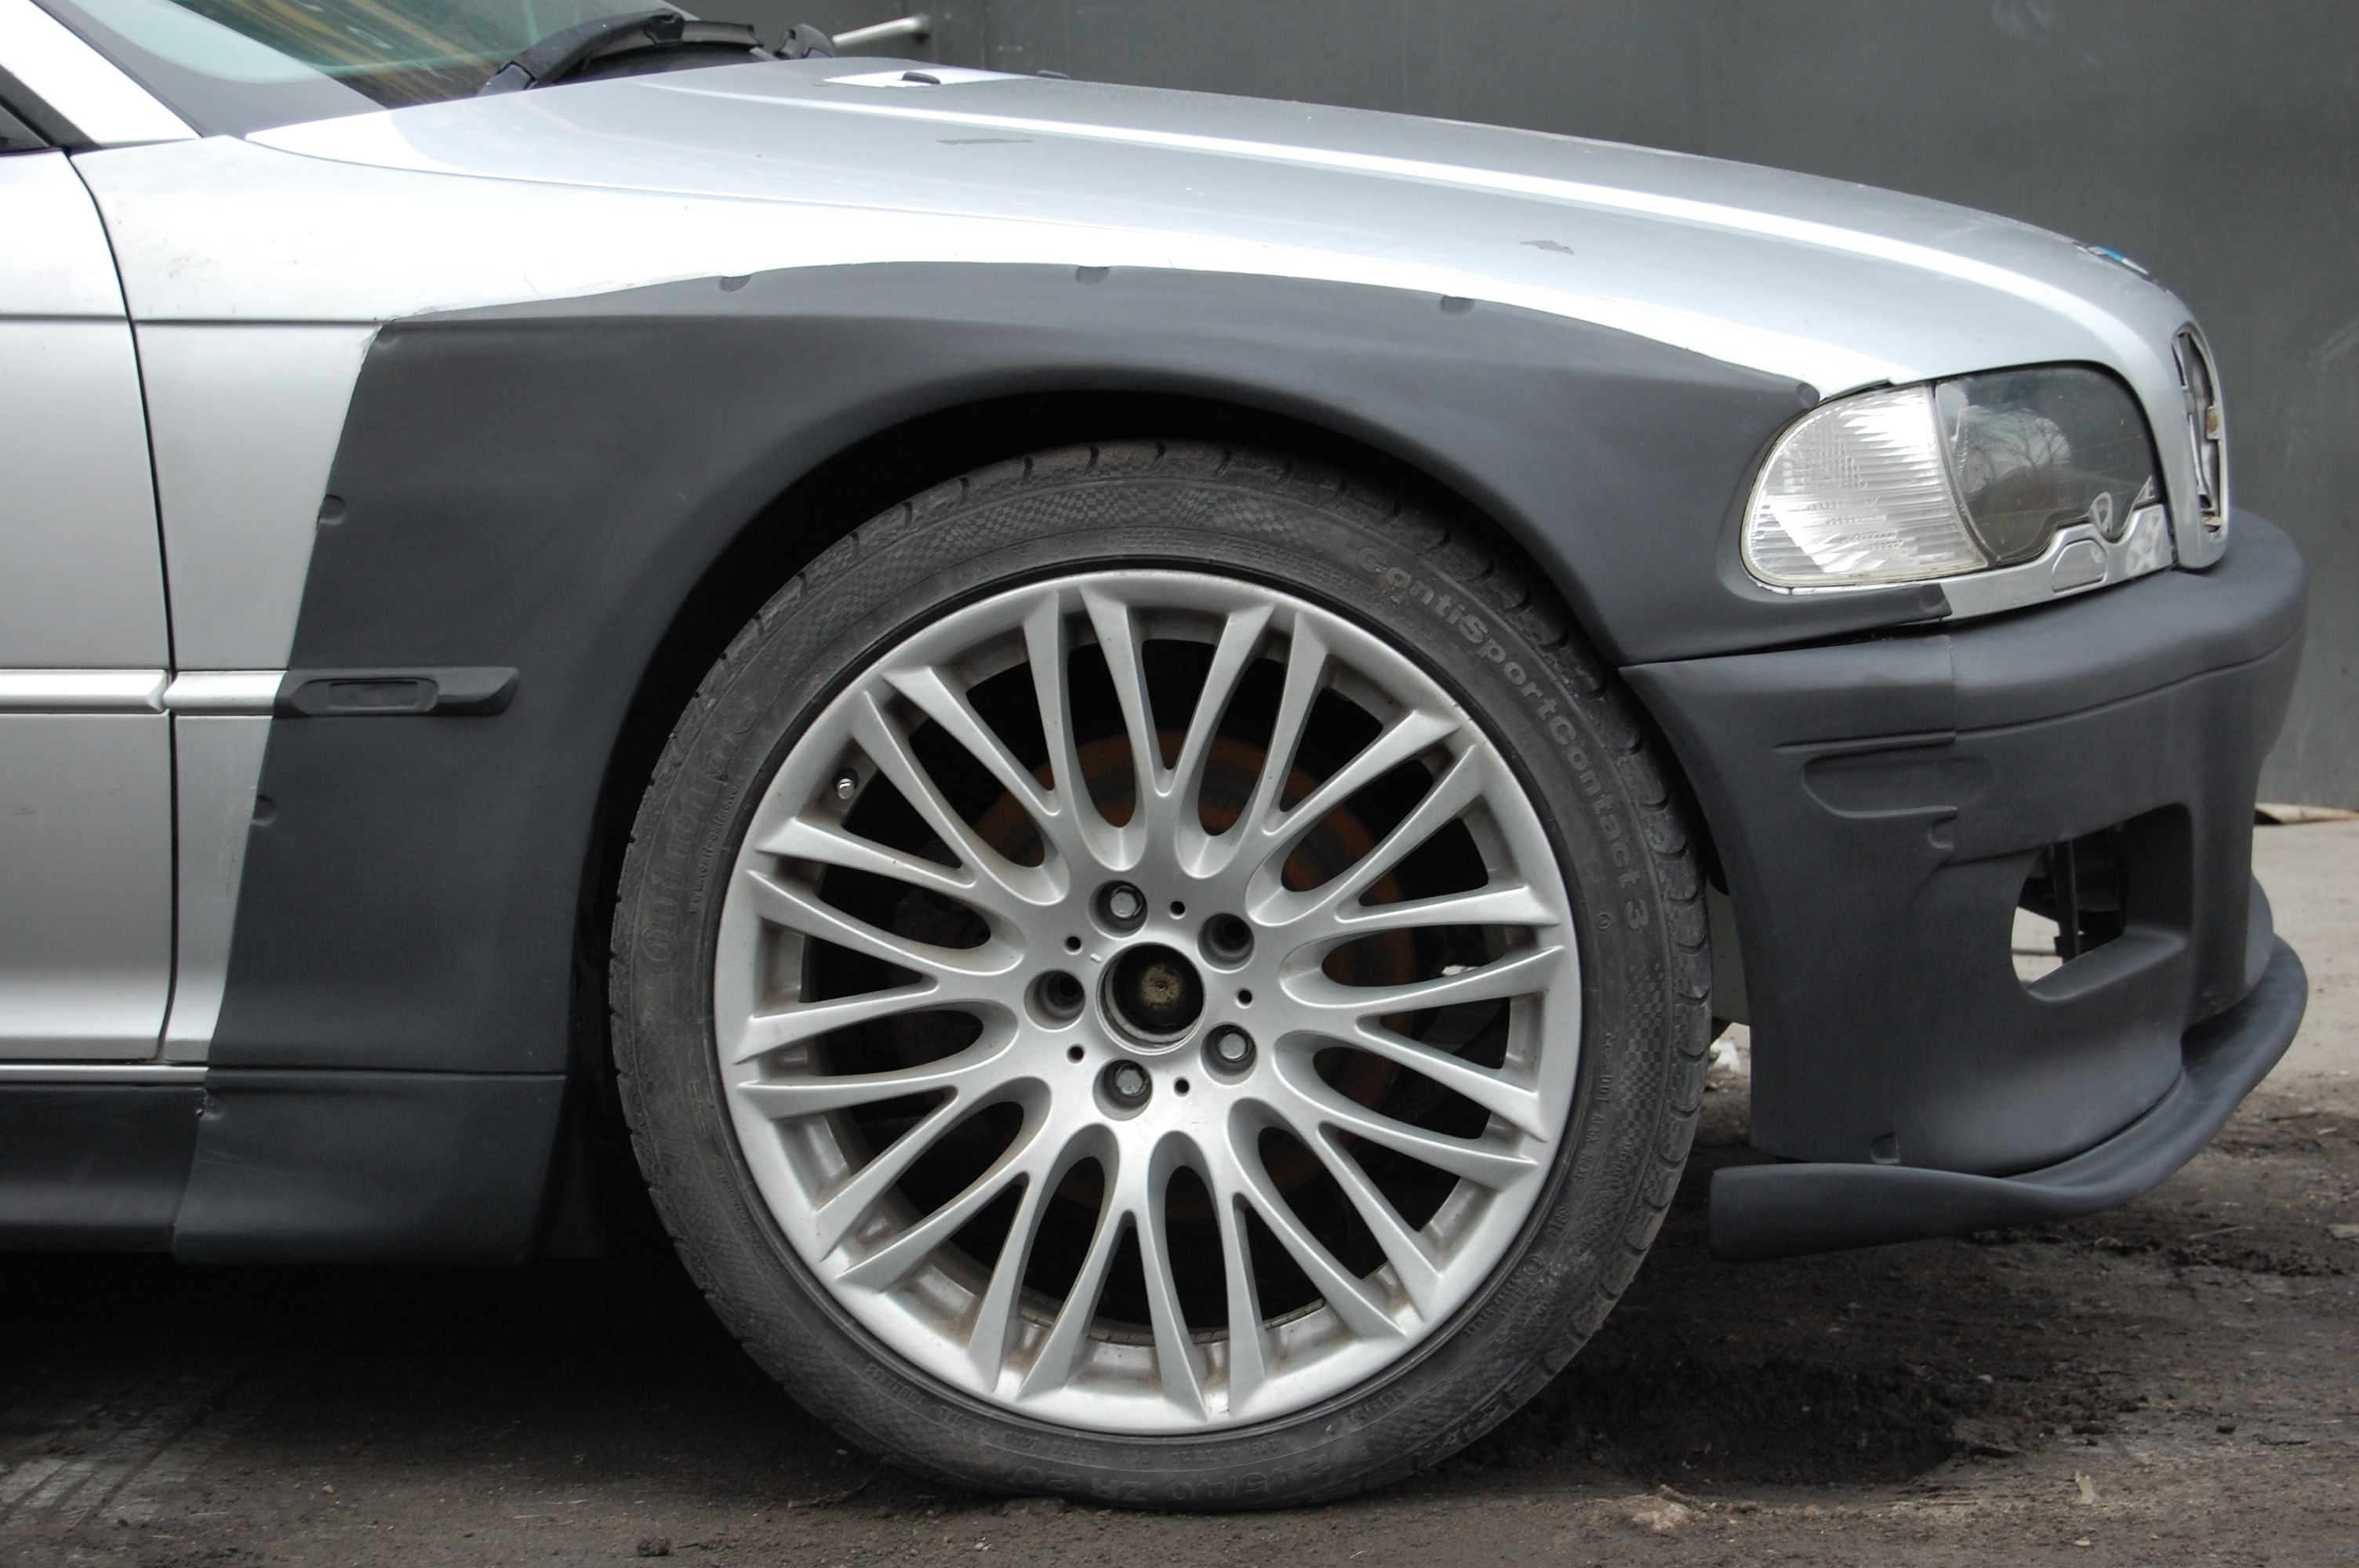 E46 M3 Front Overfenders Widebody V2 Shop Abmax Adam Litwiniak